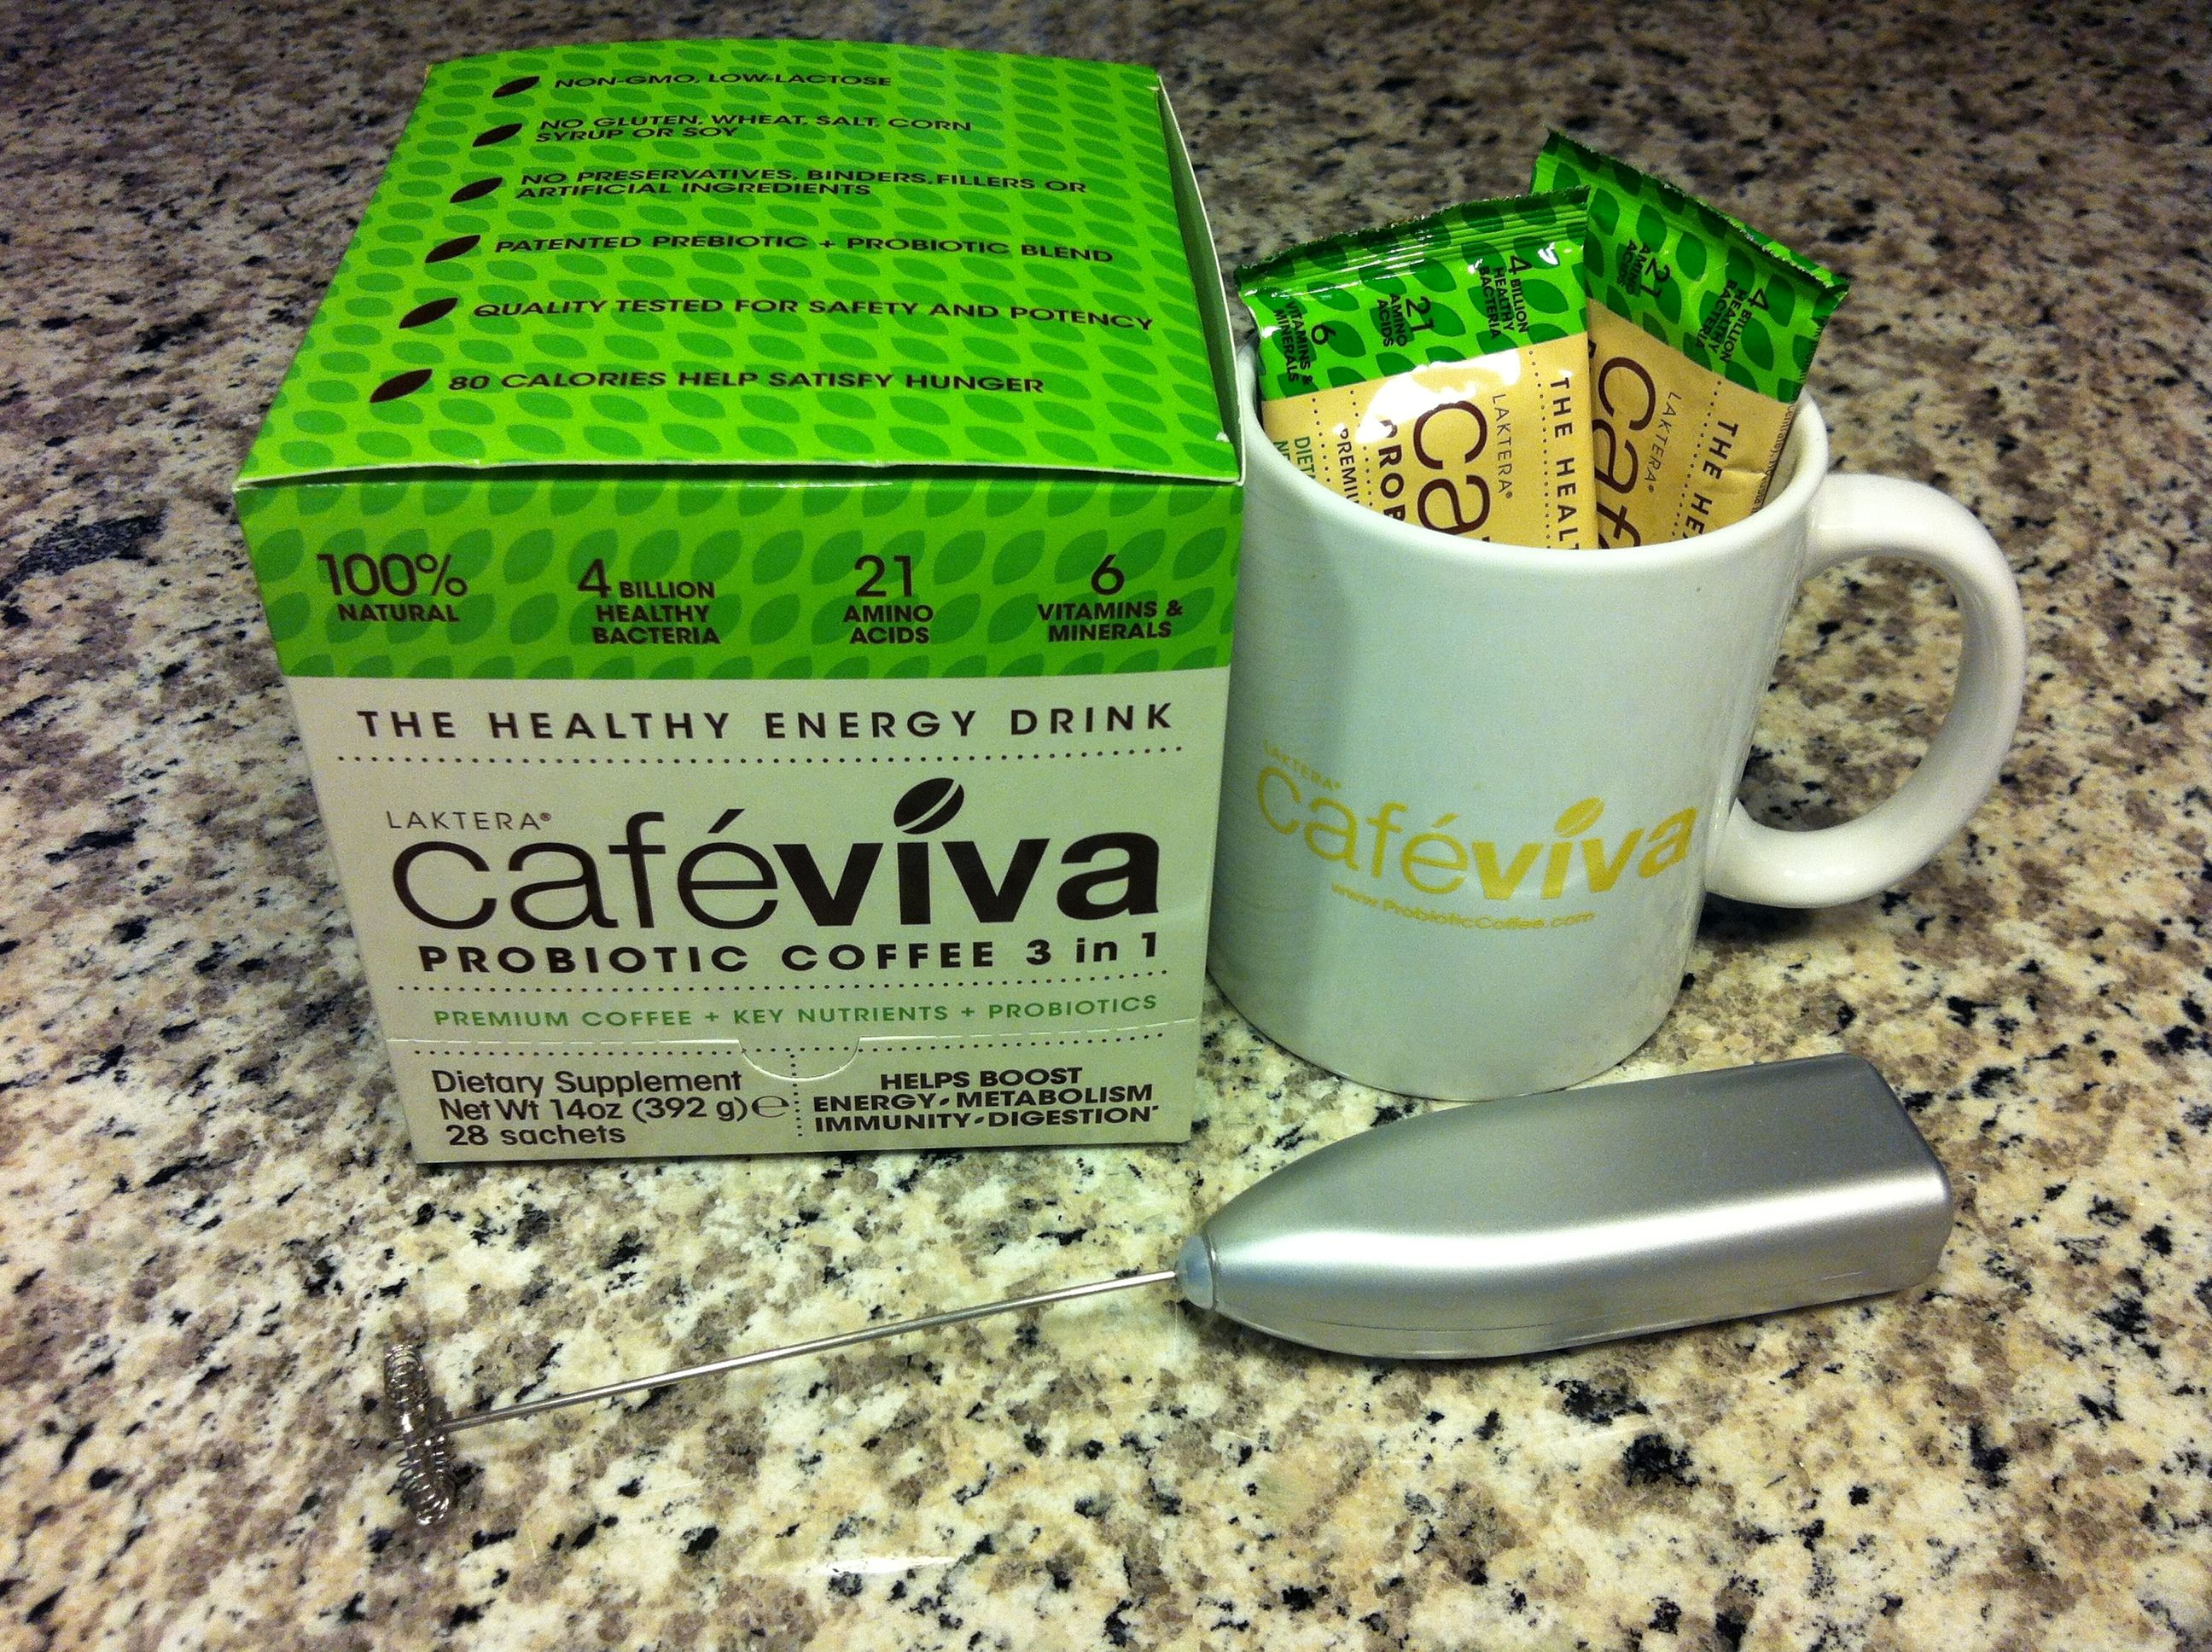 Cafe Viva Mug & Frother available at www.probioticcoffee.com